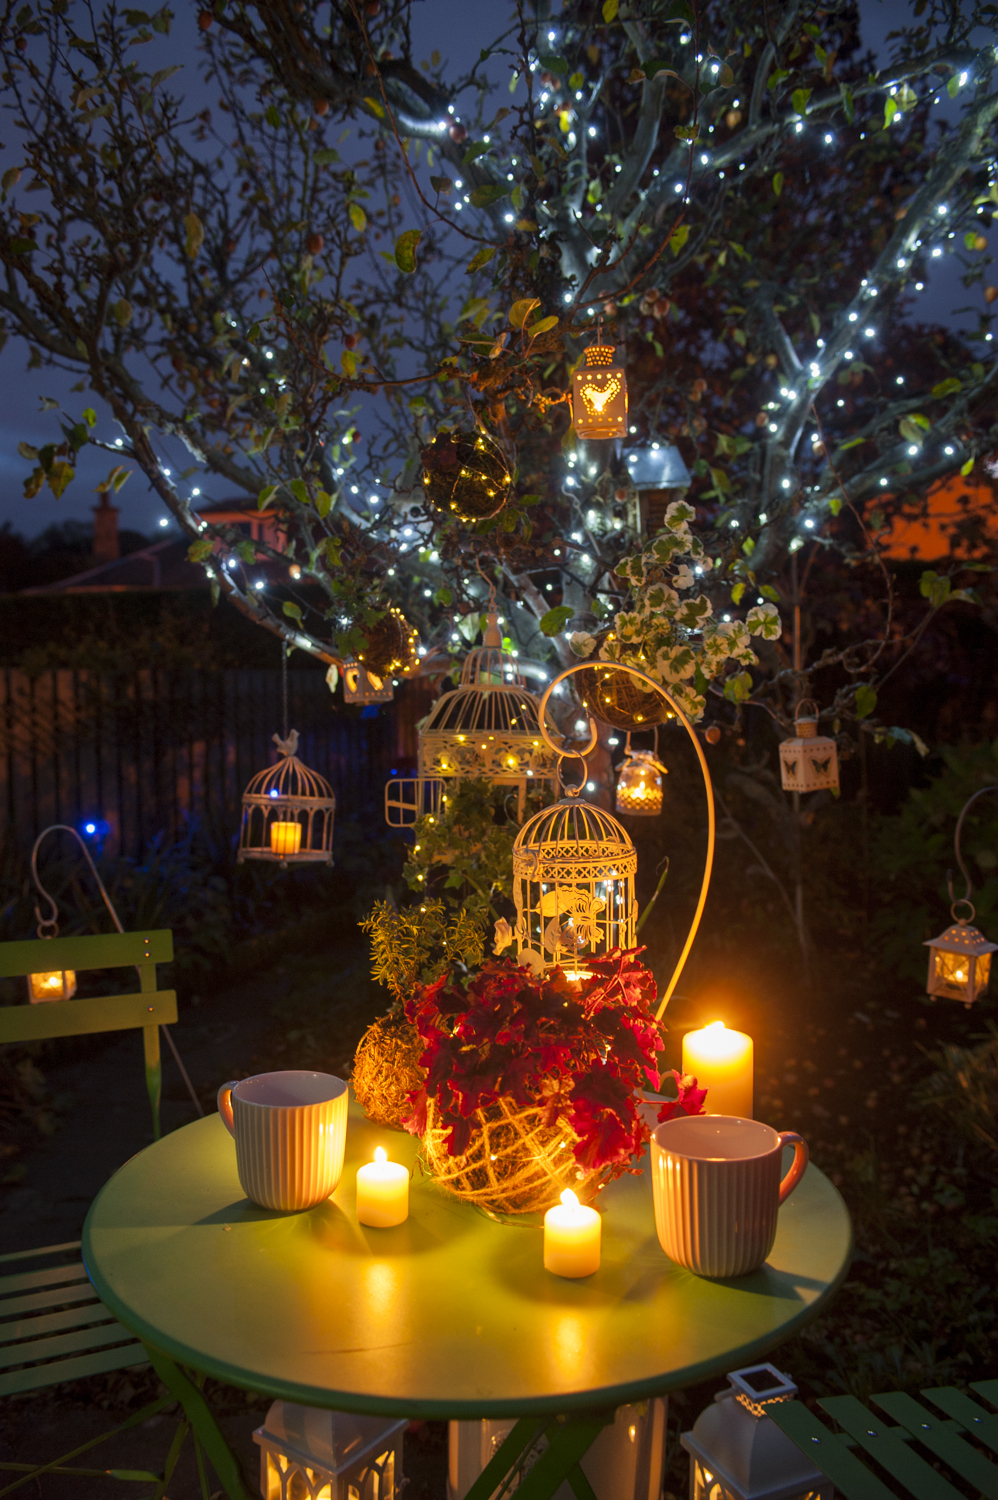 pots-and-pateriors-outdoor-living-space-winter-fairy-lights-candles-bistro-table-edinburgh-pretty.JPG